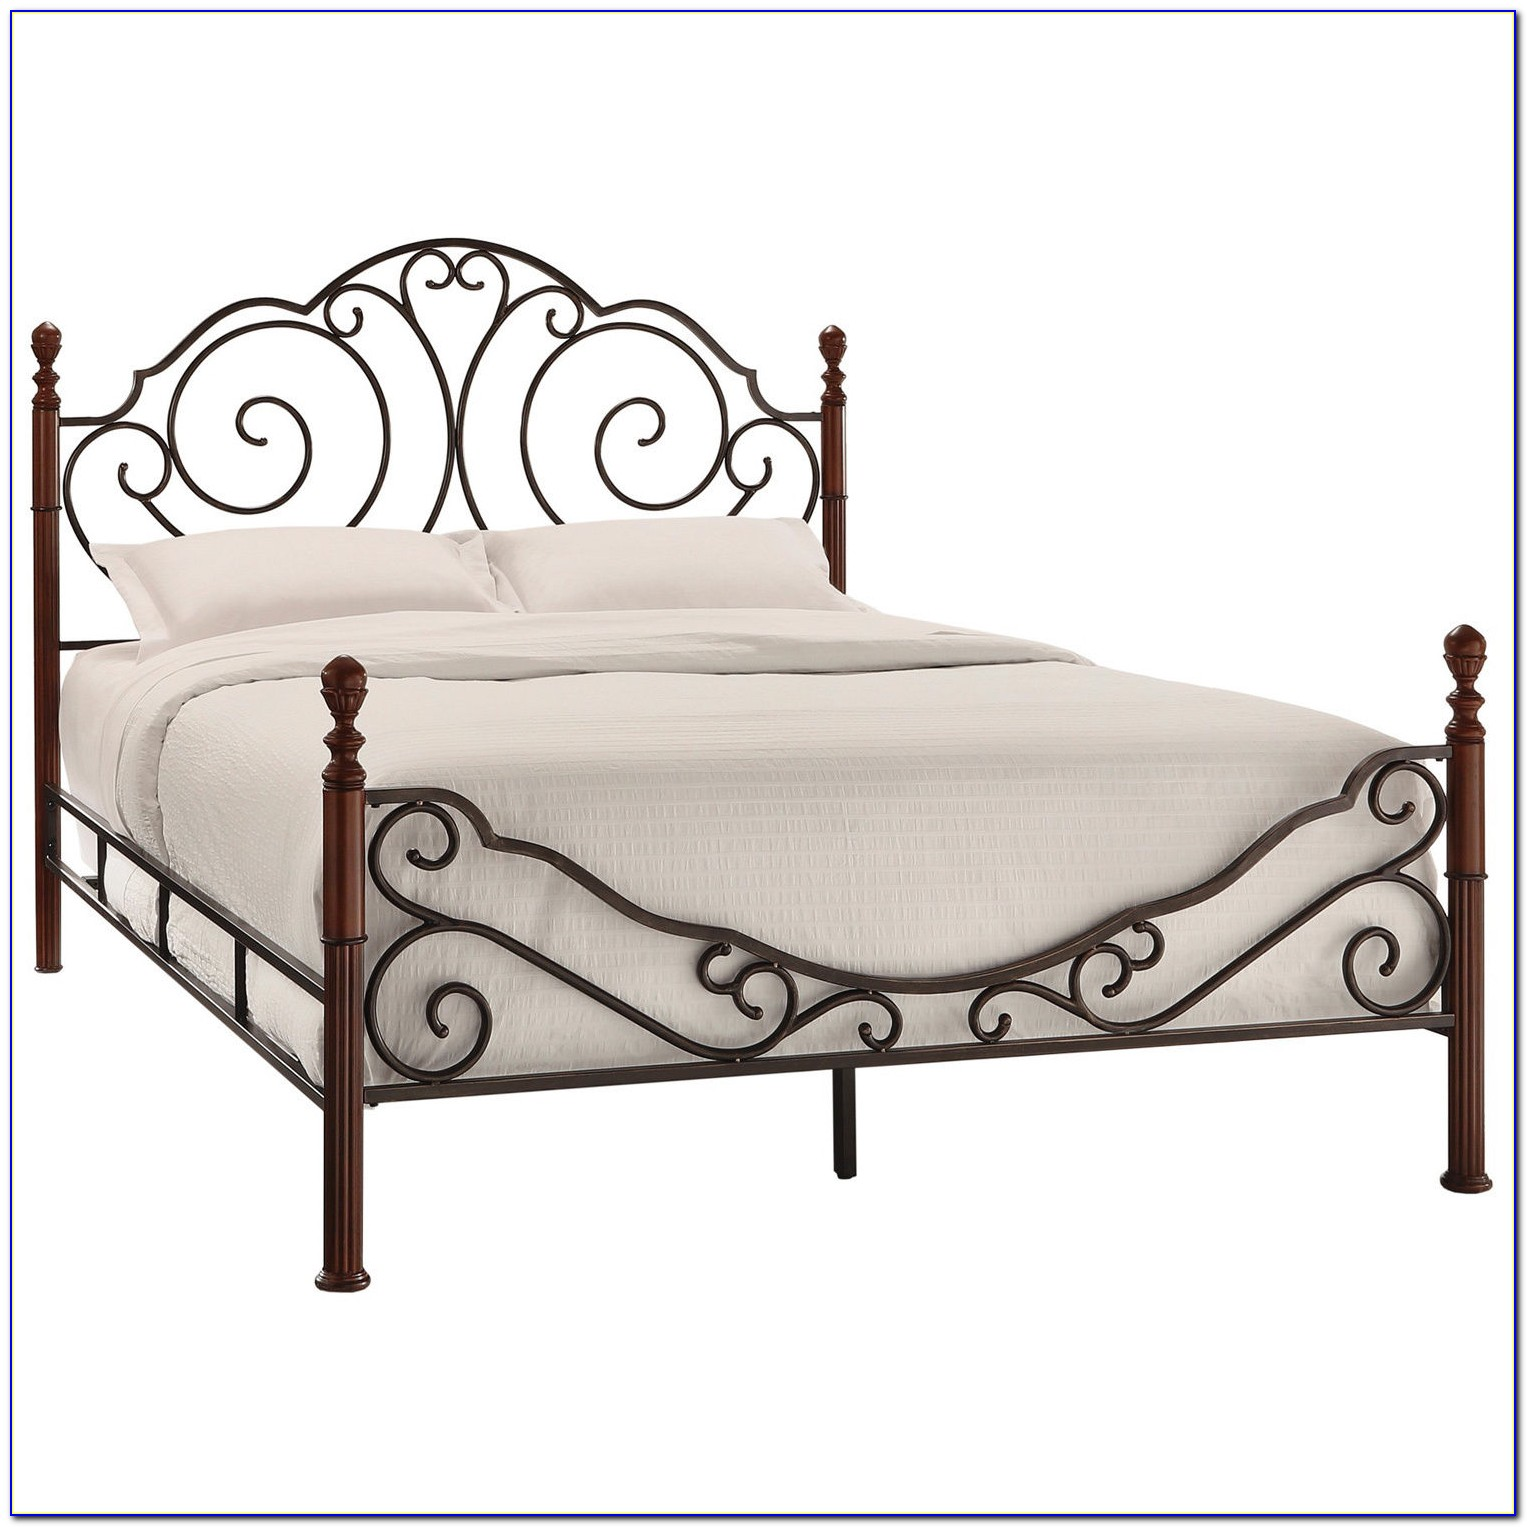 Antique Queen Metal Headboard And Footboard